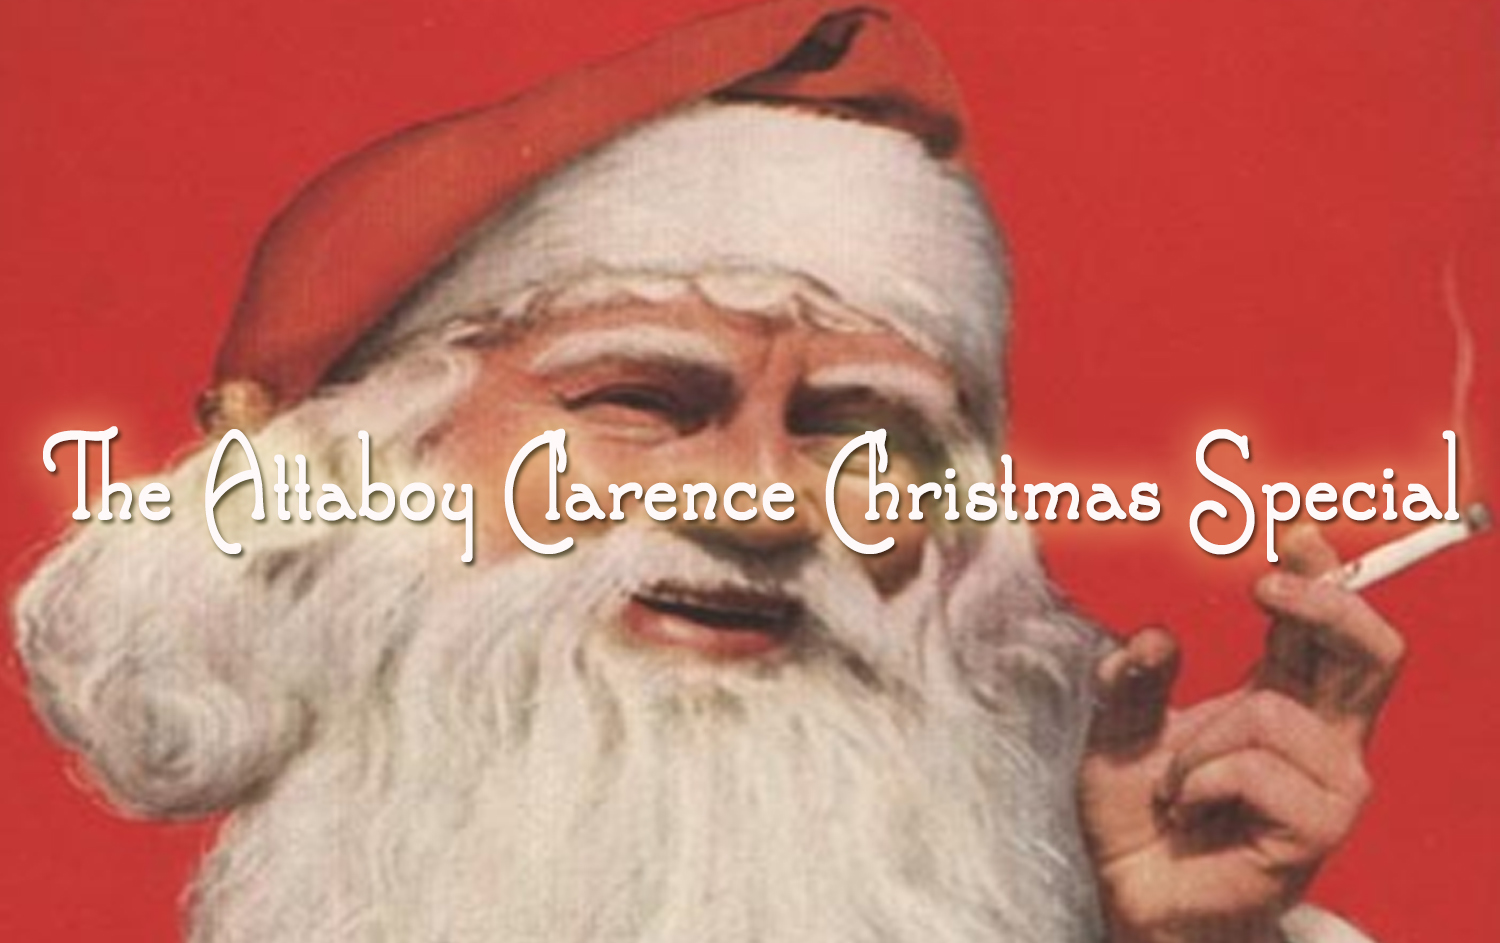 The Attaboy Clarence Christmas Special